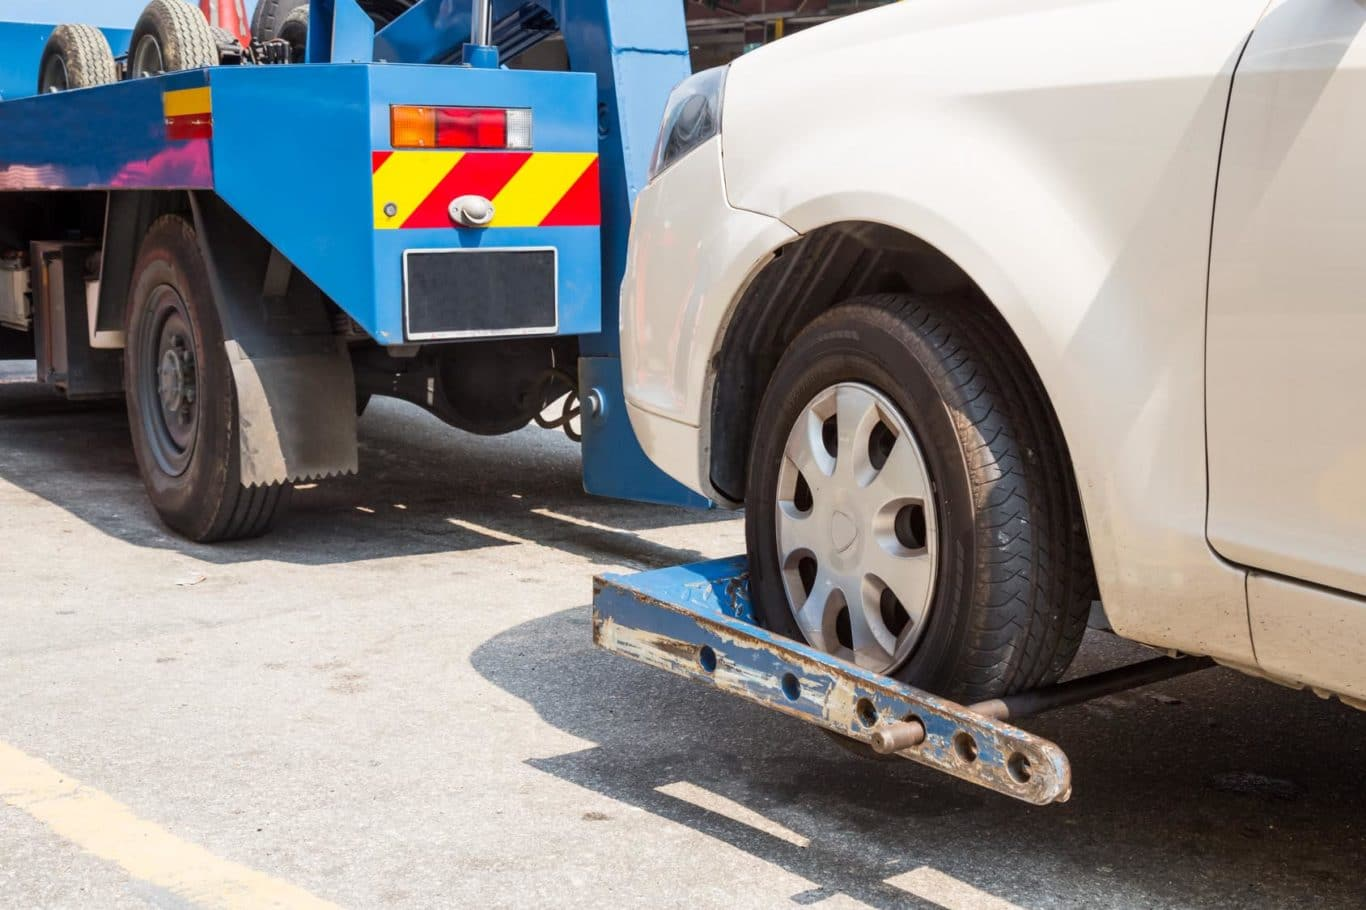 Enniskerry expert Towing services